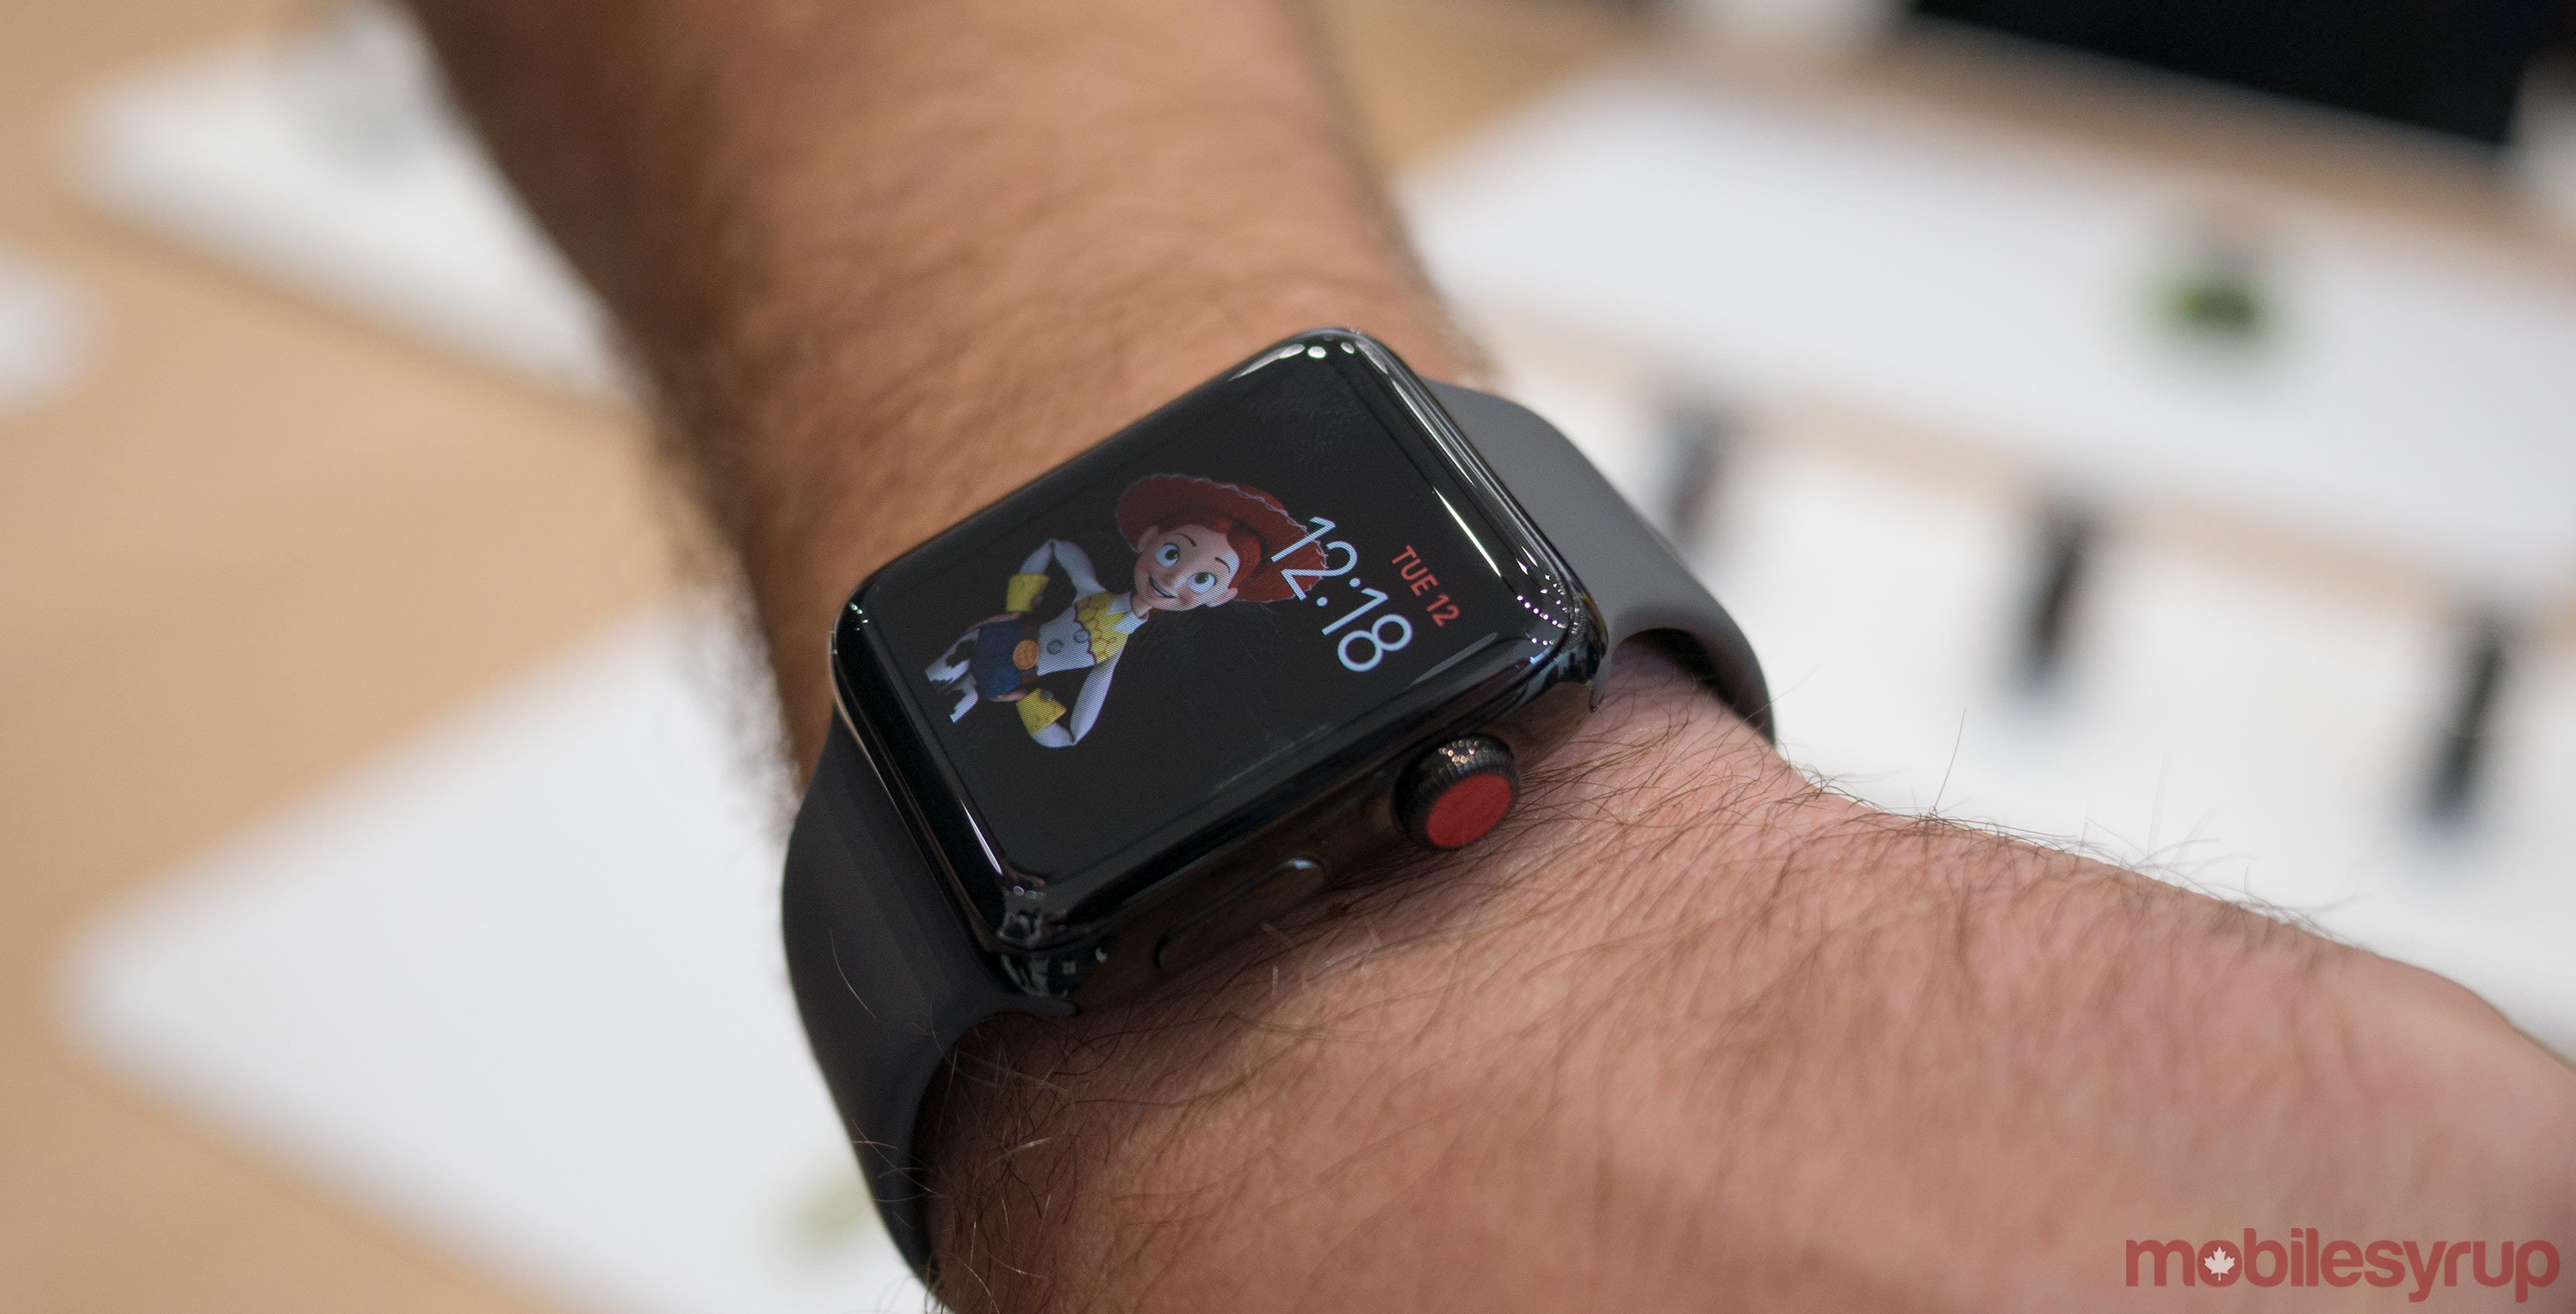 Apple Watch Series 3 on wrist